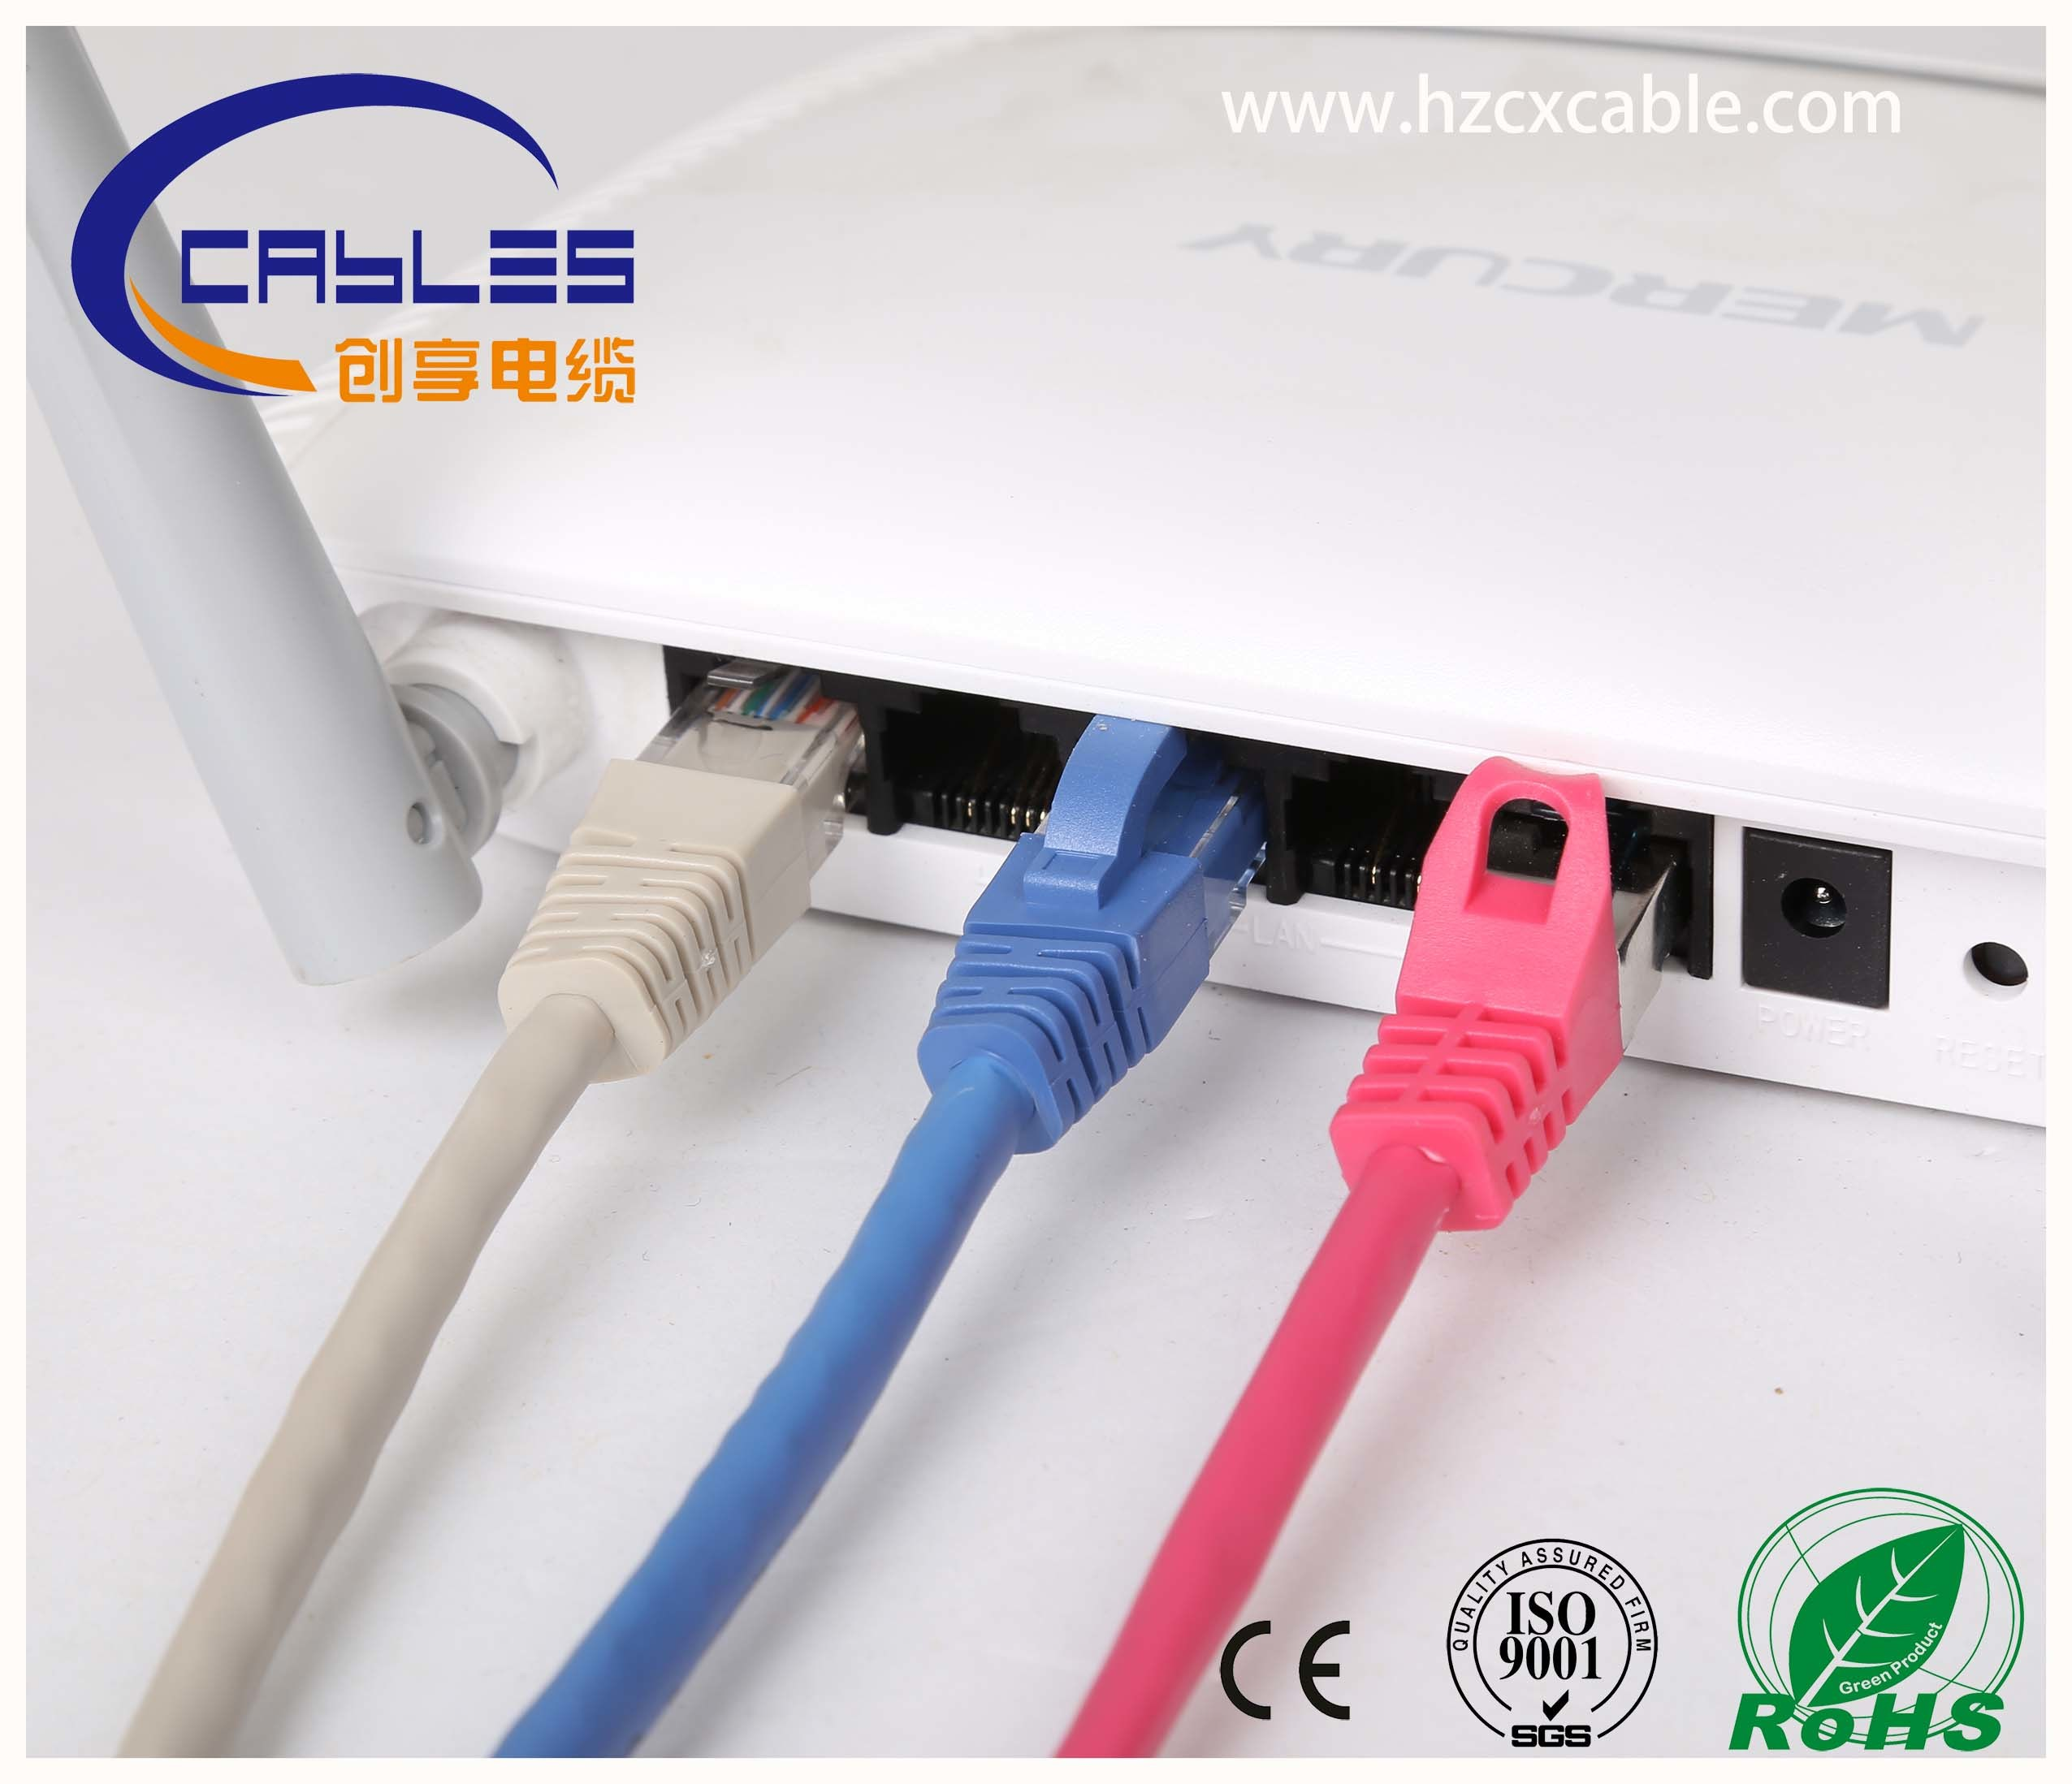 China 30m Cca Bc Rj45 Utp Cat5 Patch Cable Cord Photos Wiring